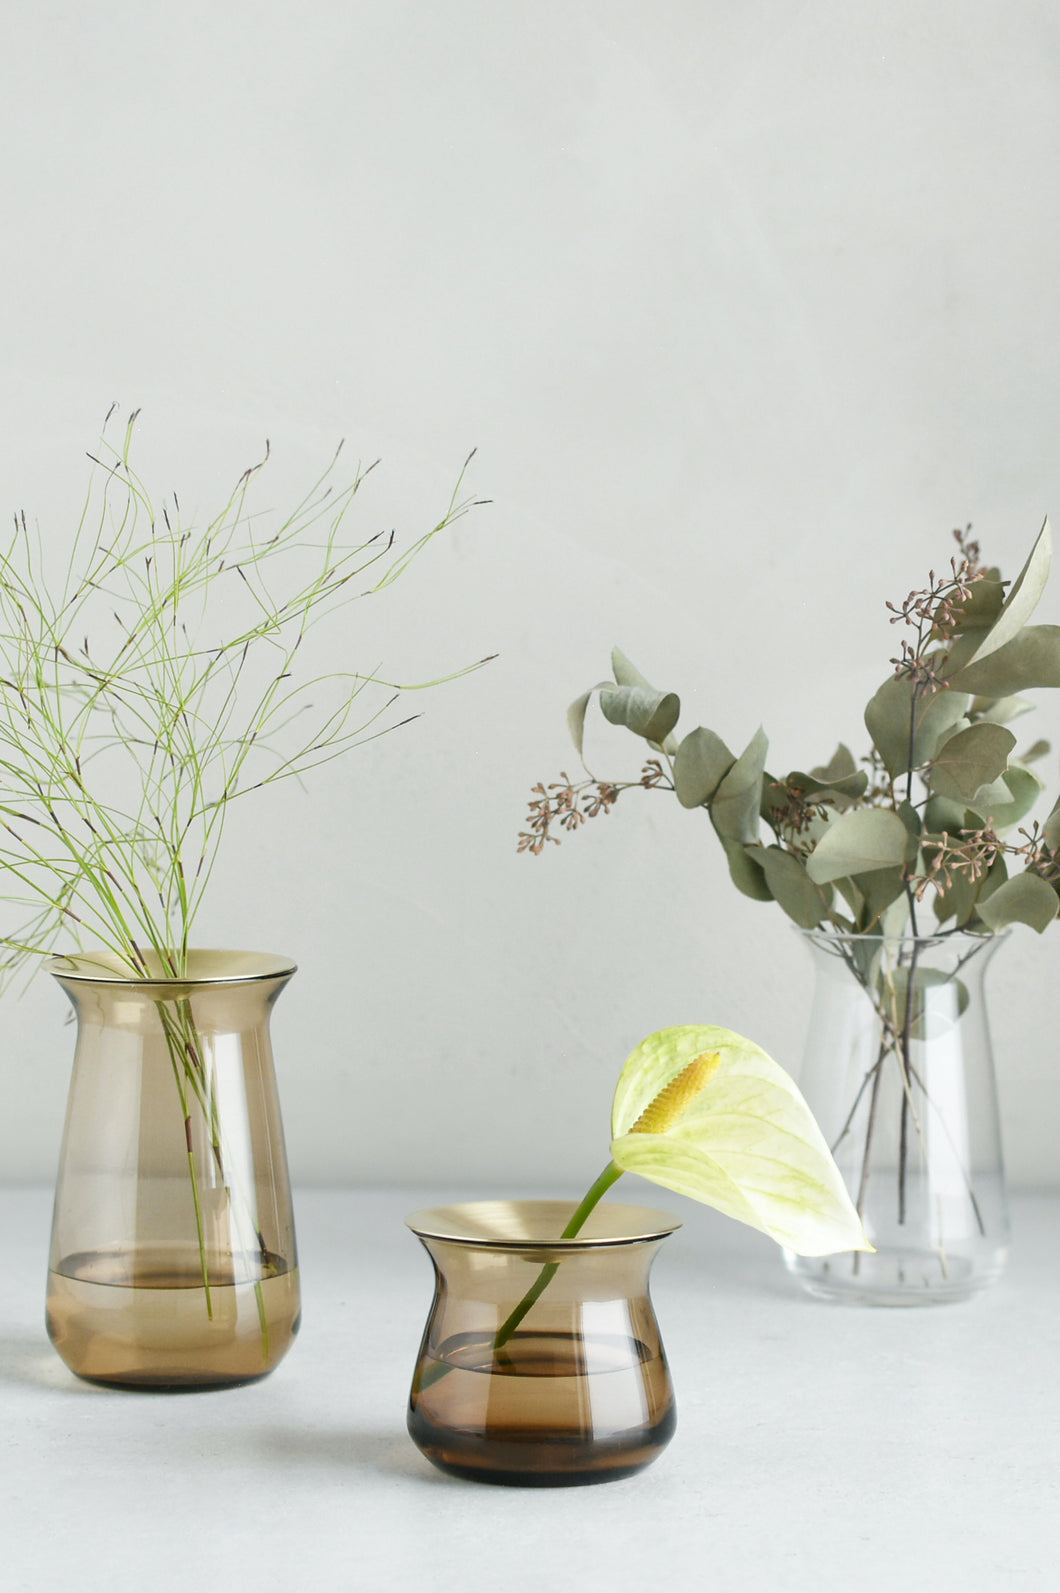 Propagating vase, hydroponics, brass, Japanese decor, #vase #cuttings | www.bowlandpitcher.com